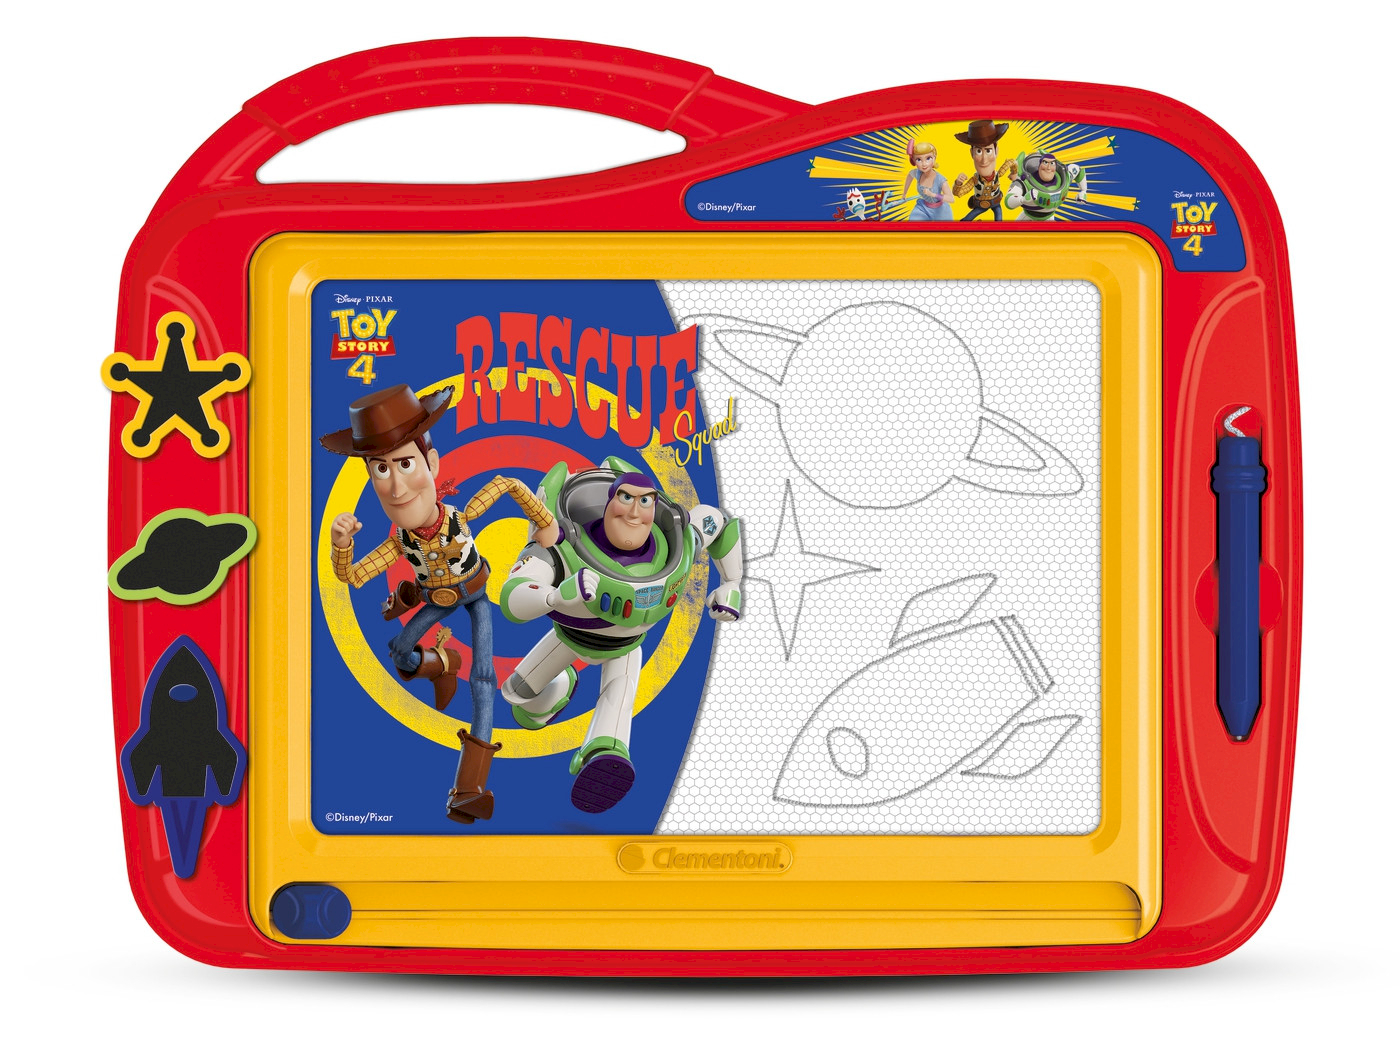 Tablette à dessins éducatifs Toy Story 4